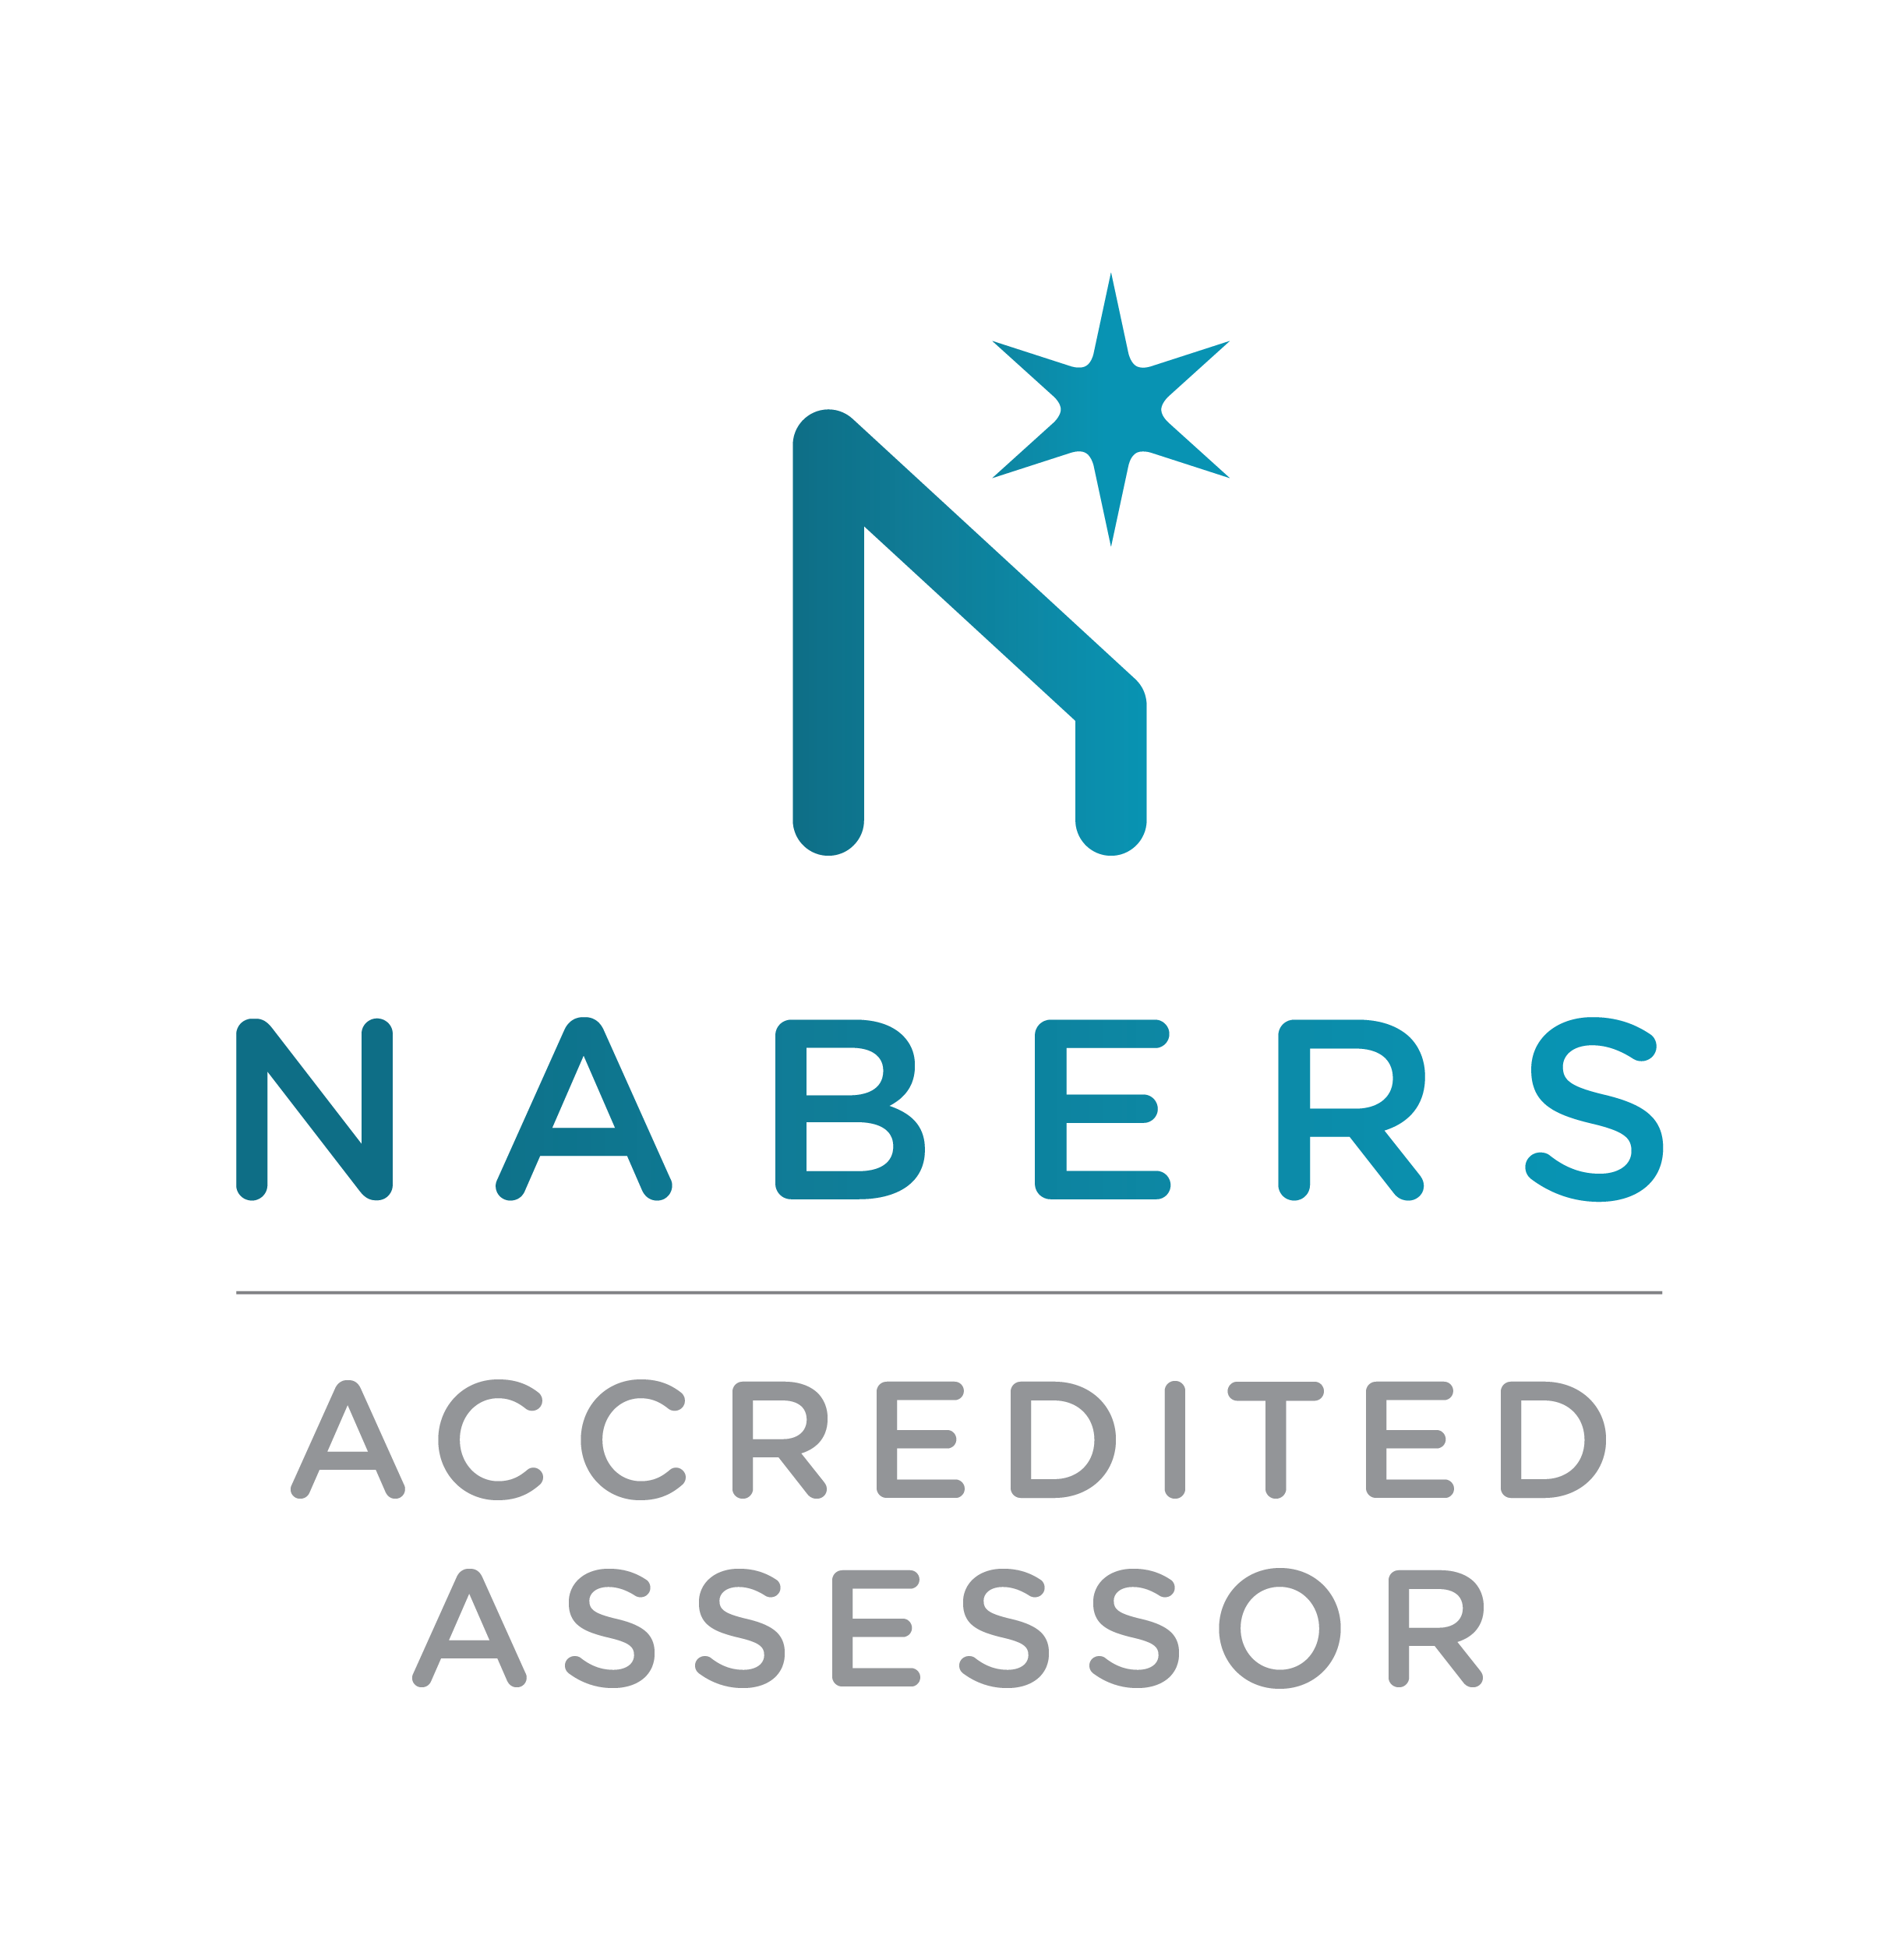 Nabers Accredited Successor logo